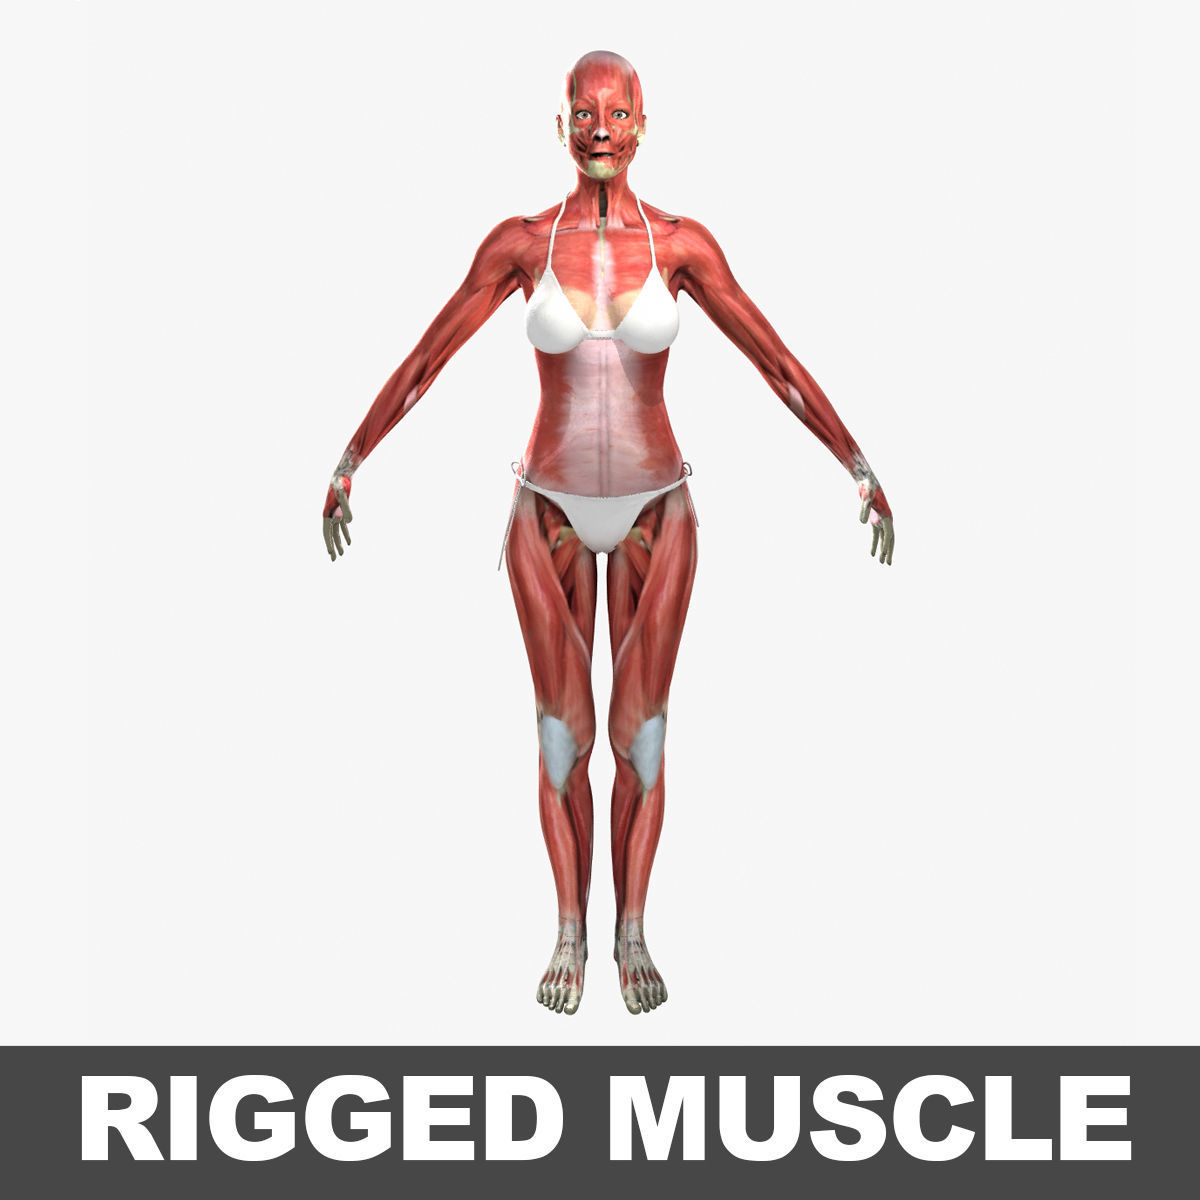 3D Detailed Full Female Muscle Anatomy Rigged | CGTrader